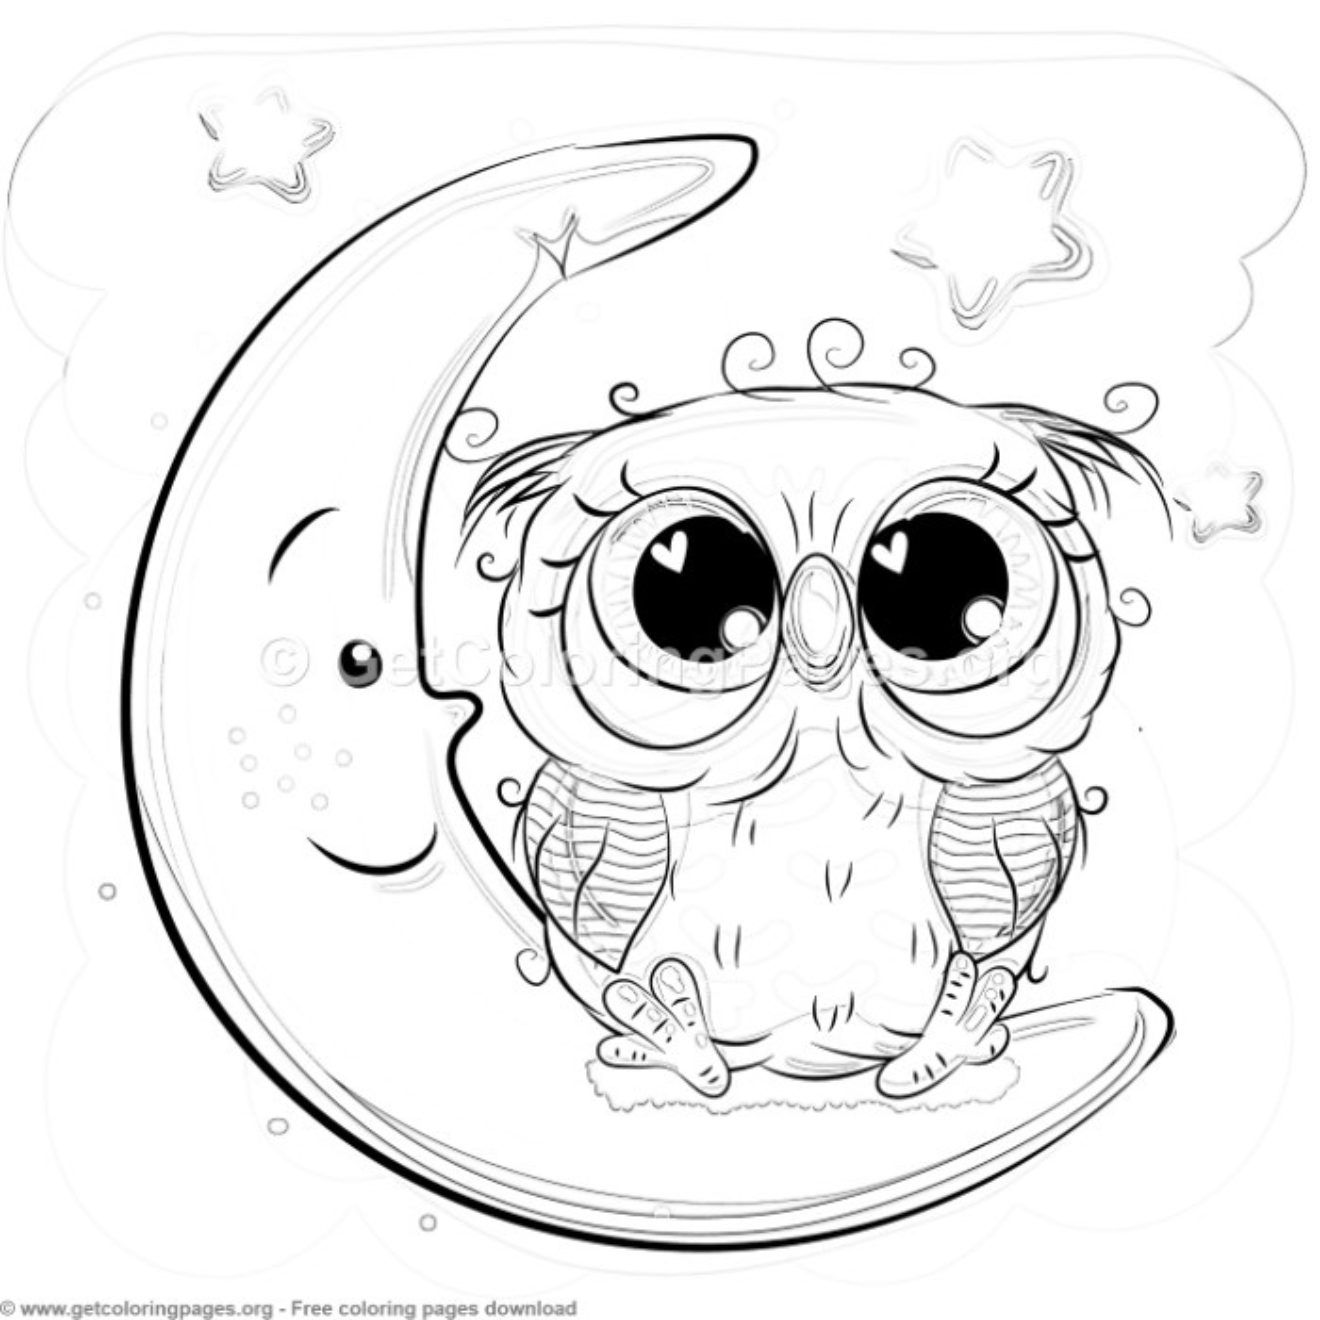 23 Cute Owl Coloring Pages Getcoloringpages Org Owl Coloring Pages Cute Coloring Pages Owl Drawing Simple